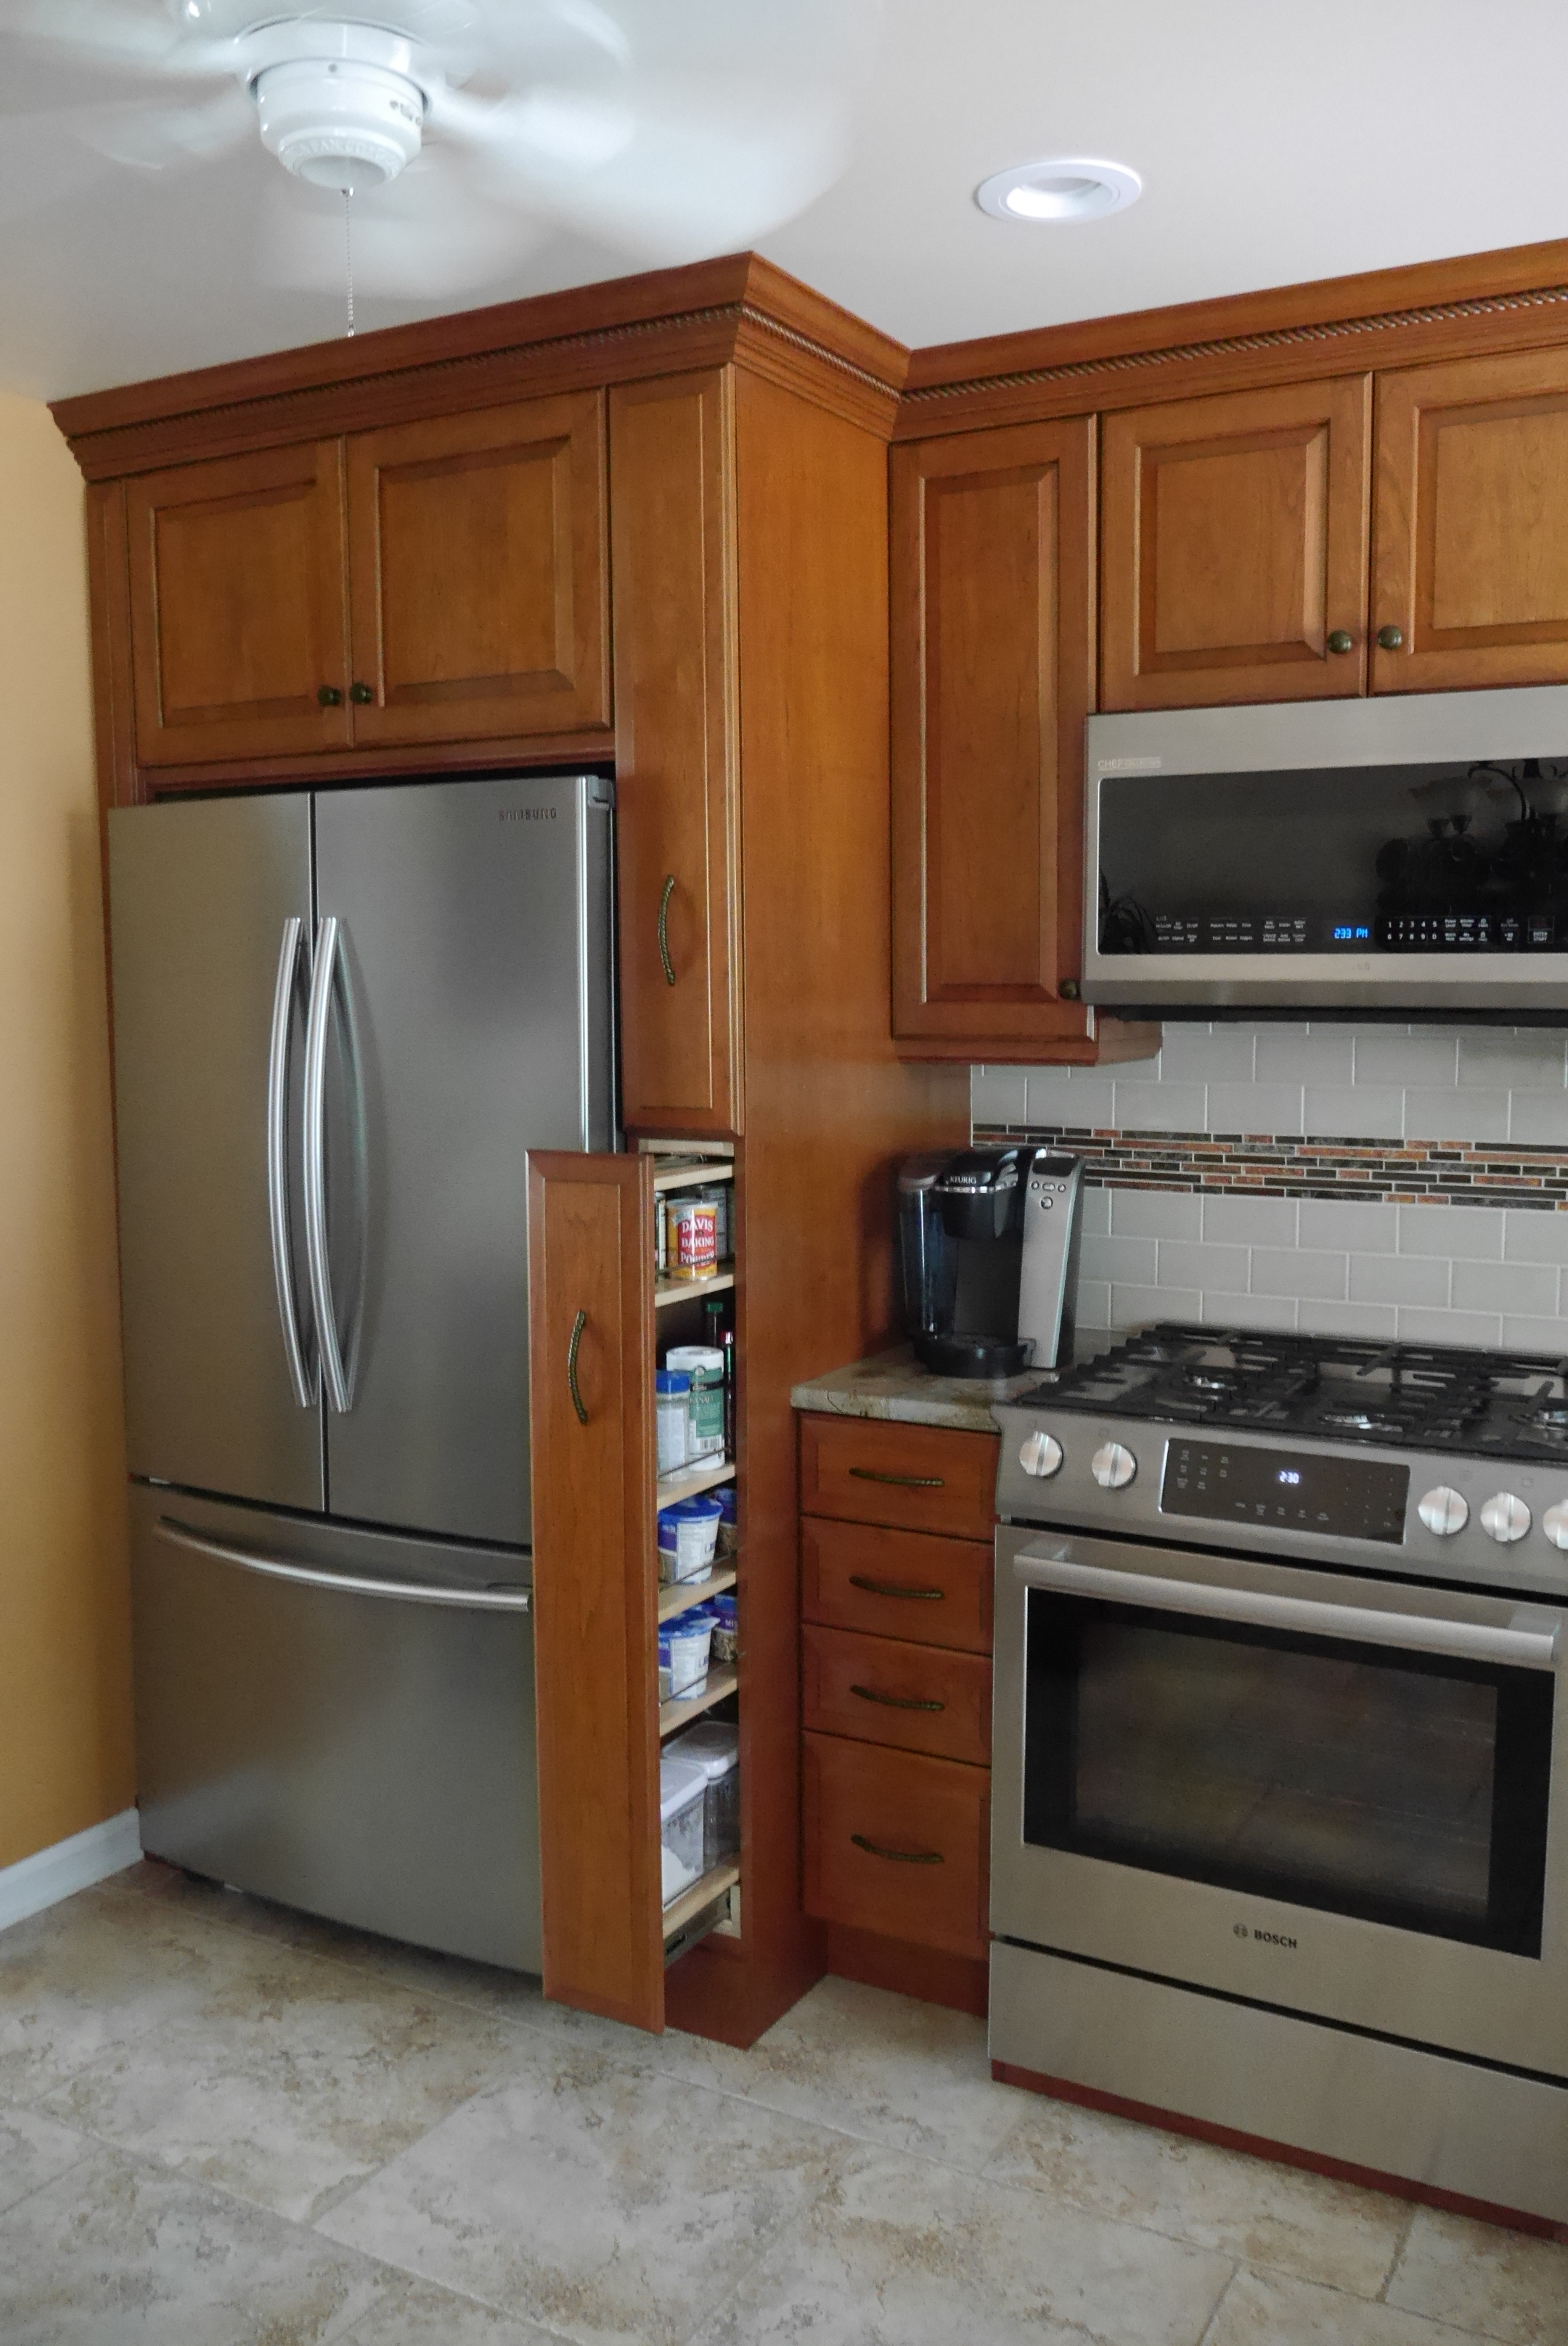 Adelphi custom kitchen with full height spice cabinet after installation by Groundswell Contracting